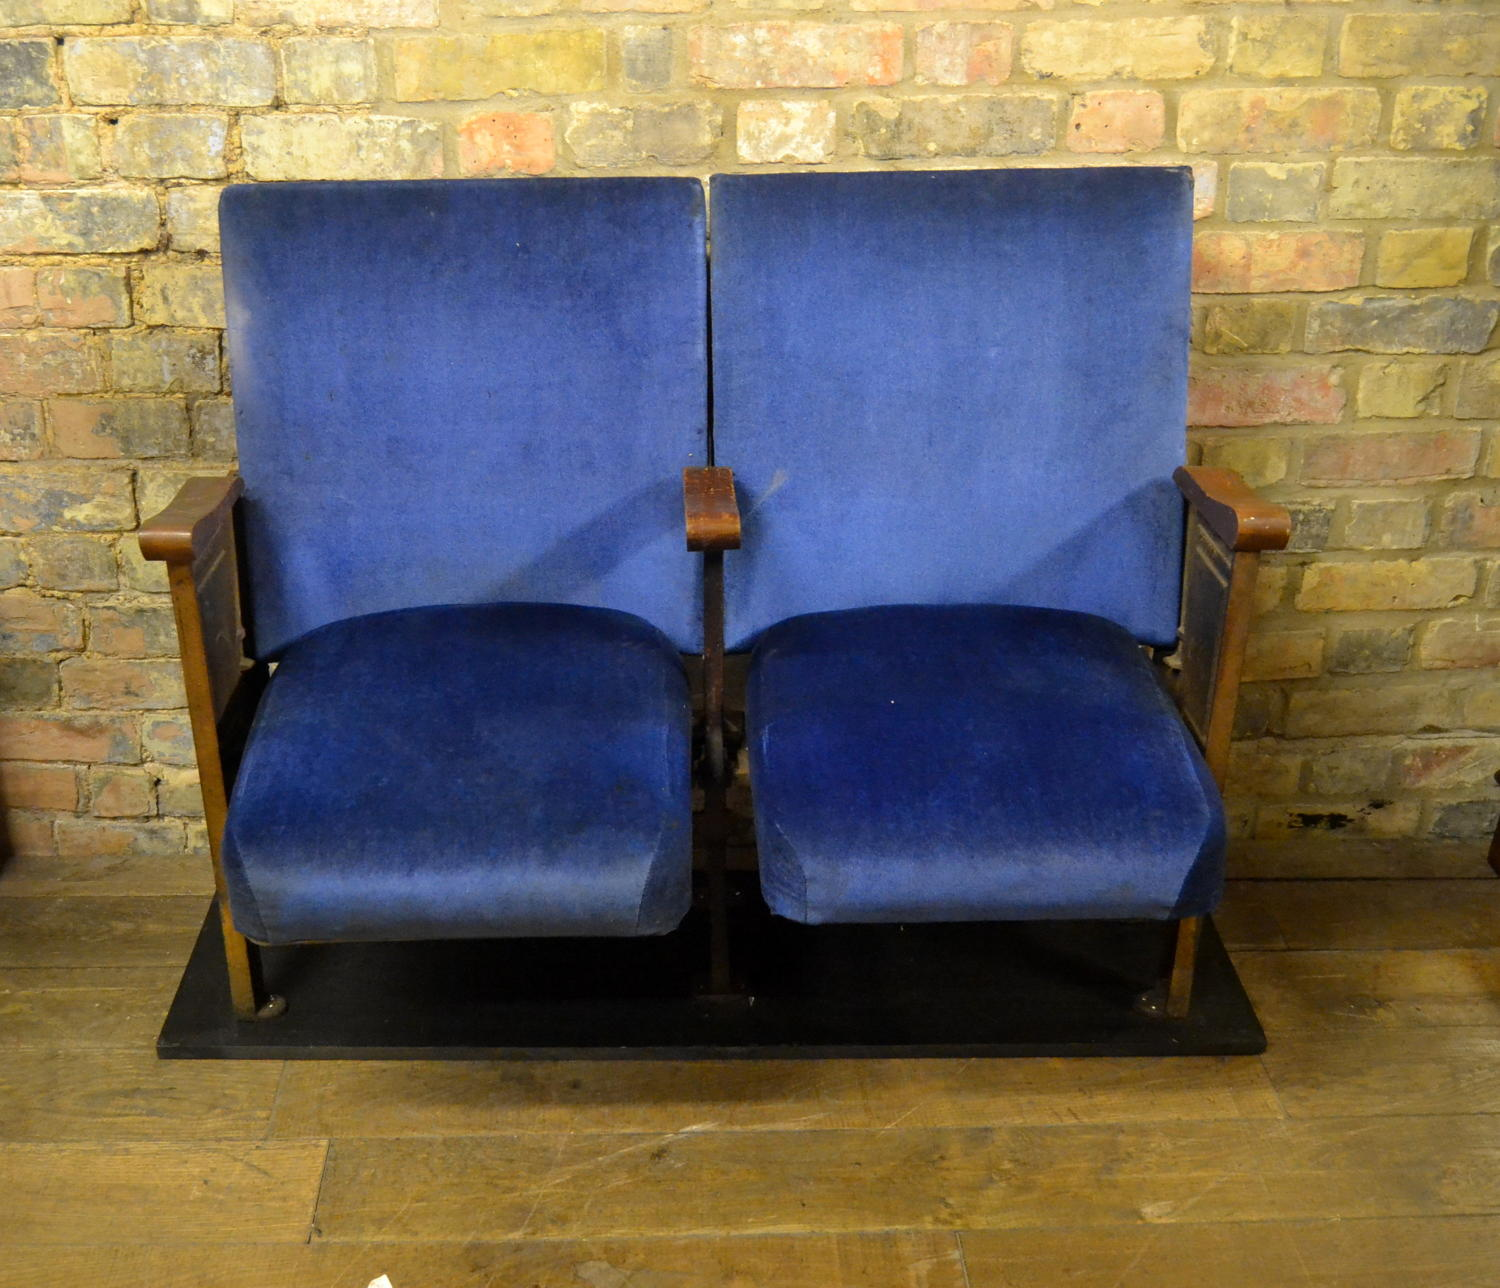 Antique Cinema Theatre Seats